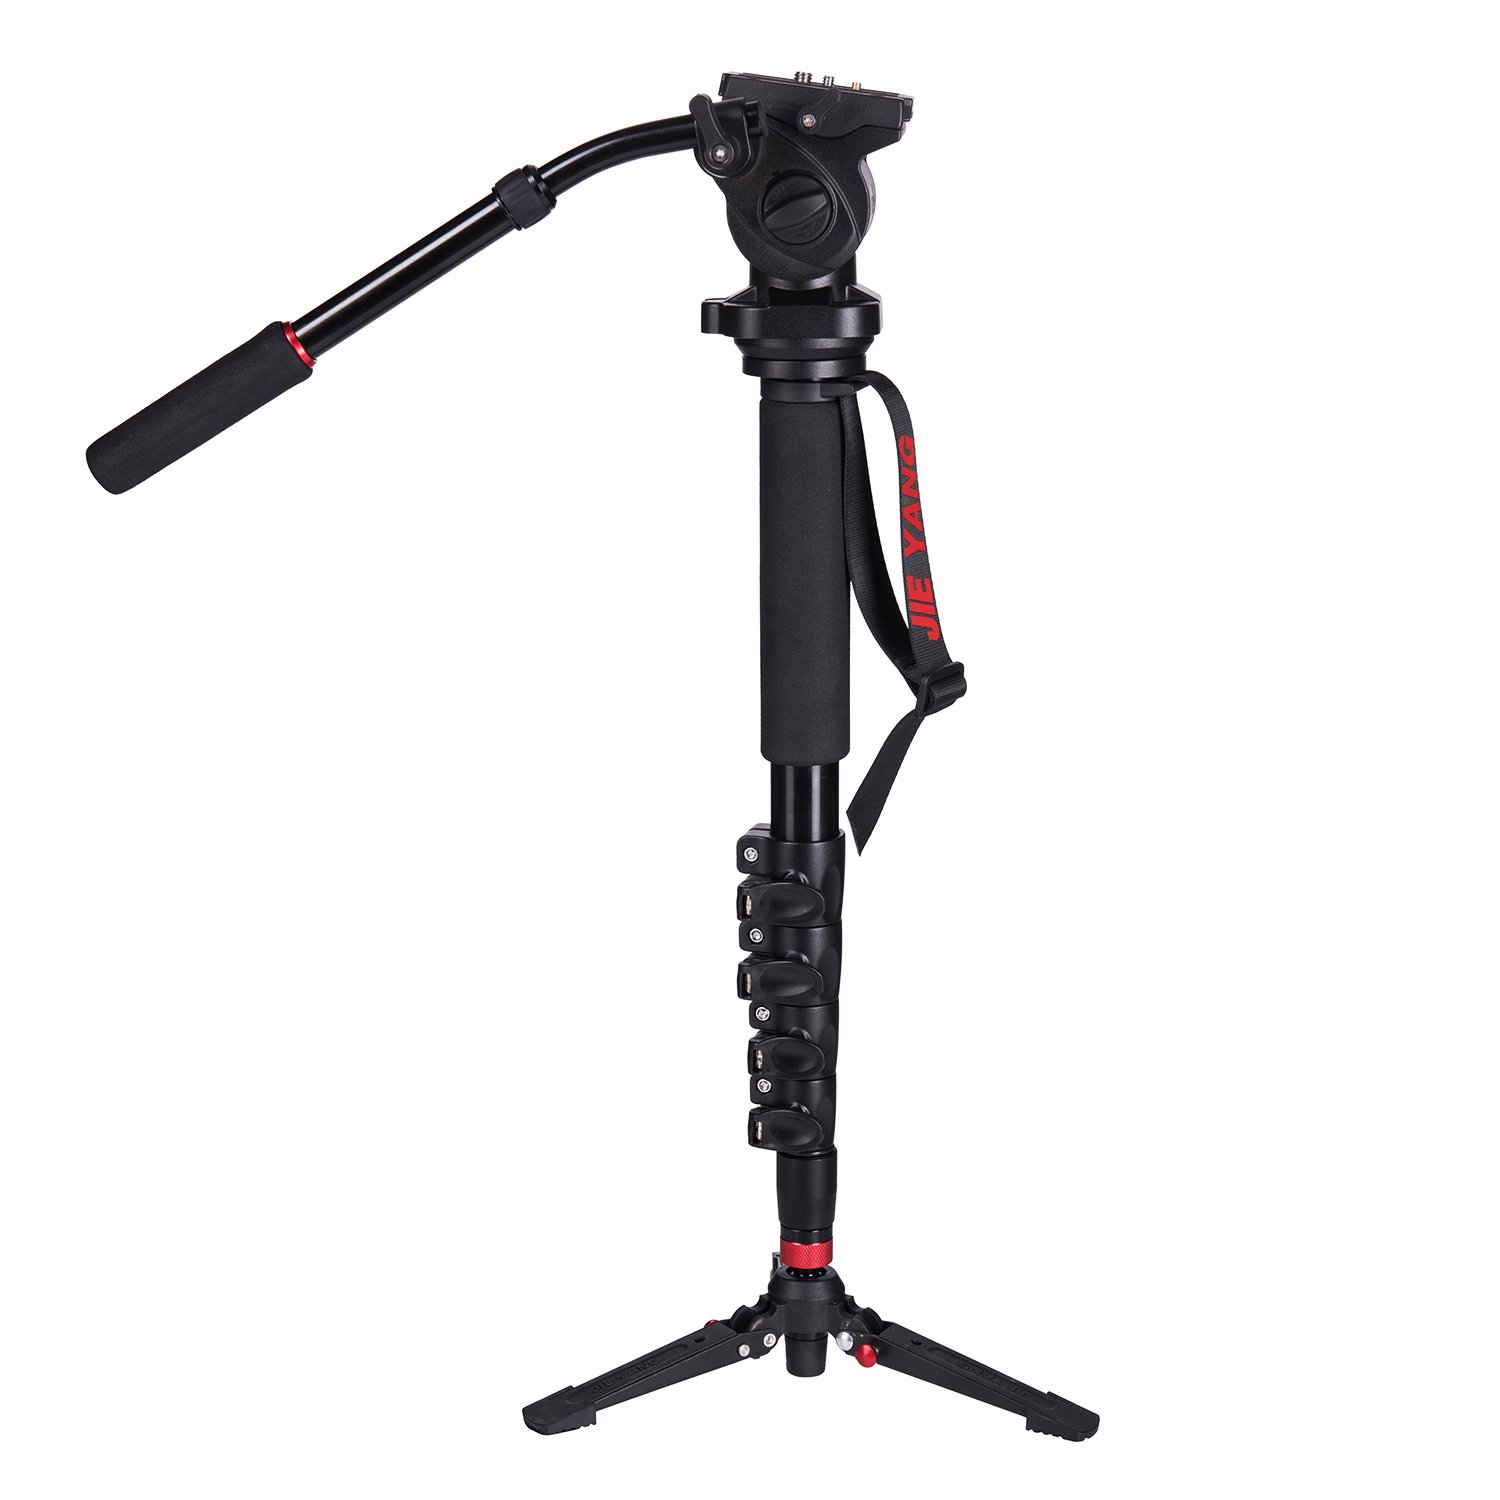 Profession DSLR Camera Monopod, With Fluid Pan Head Quick Release Plate And Removable Feet Video Monopod, 63'' Max Load 11 LB for DSLR Camera and Video